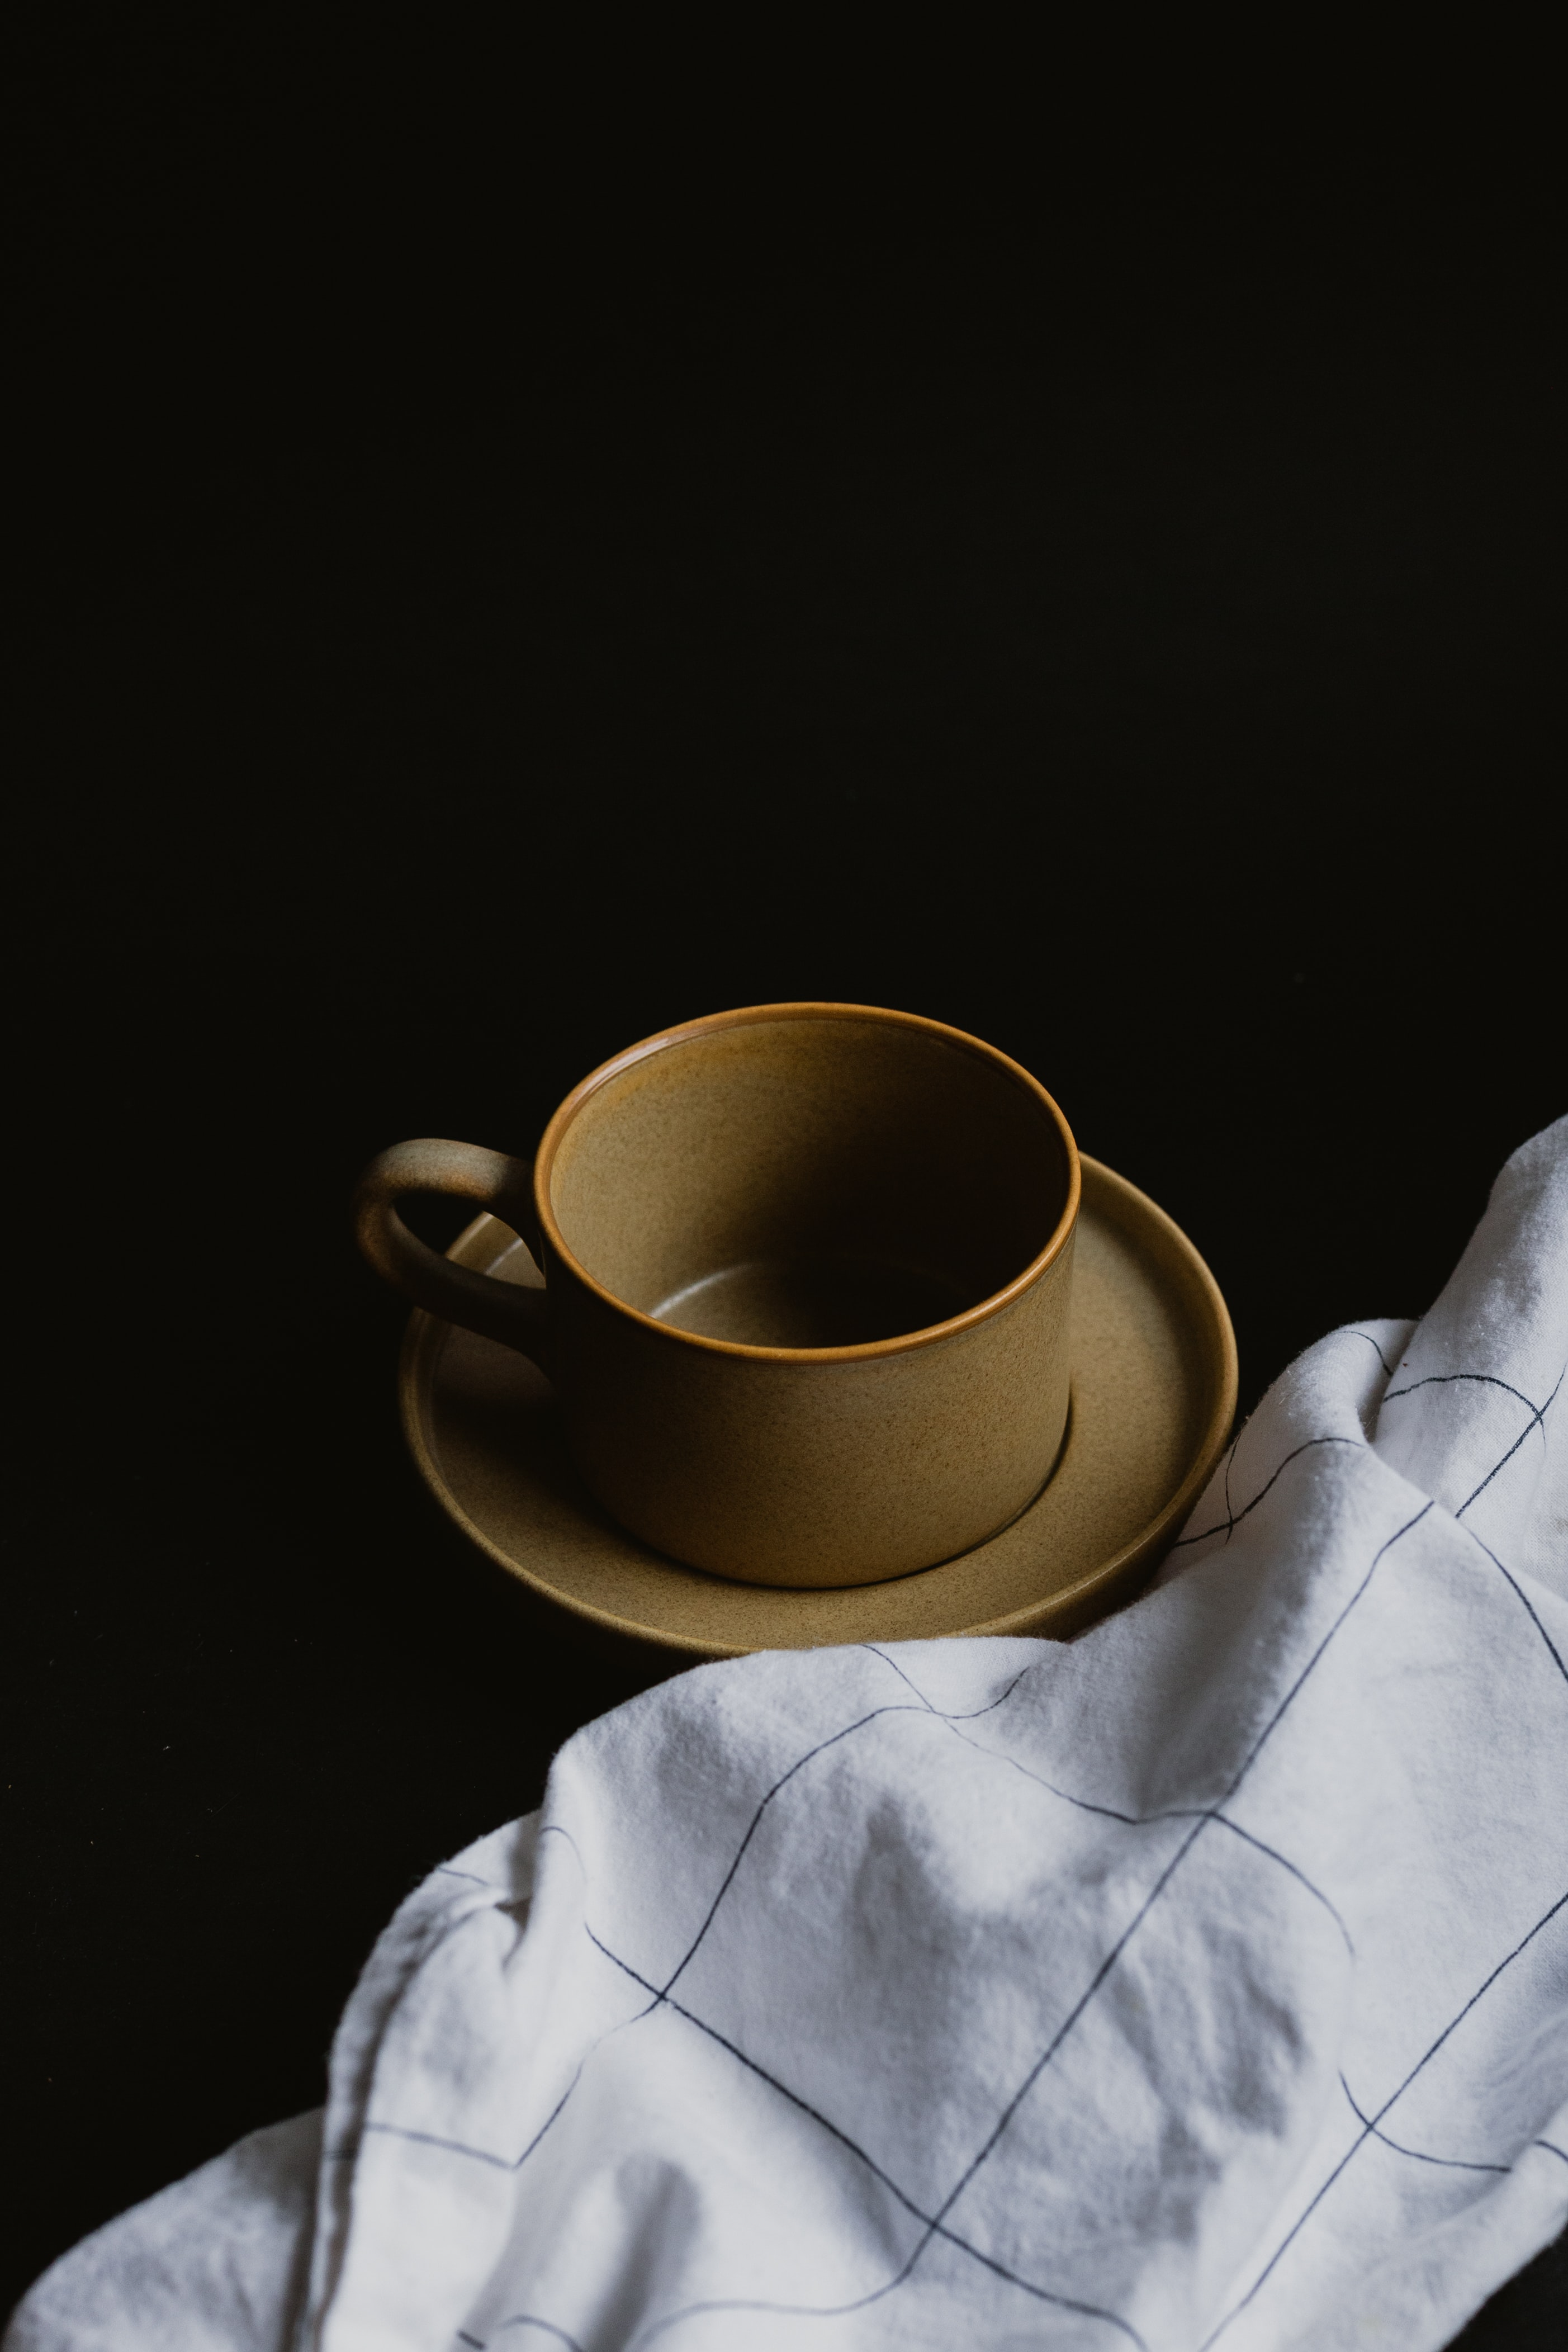 102368 Screensavers and Wallpapers Still Life for phone. Download Still Life, Miscellanea, Miscellaneous, Cup, Cloth, Plate, Towel pictures for free